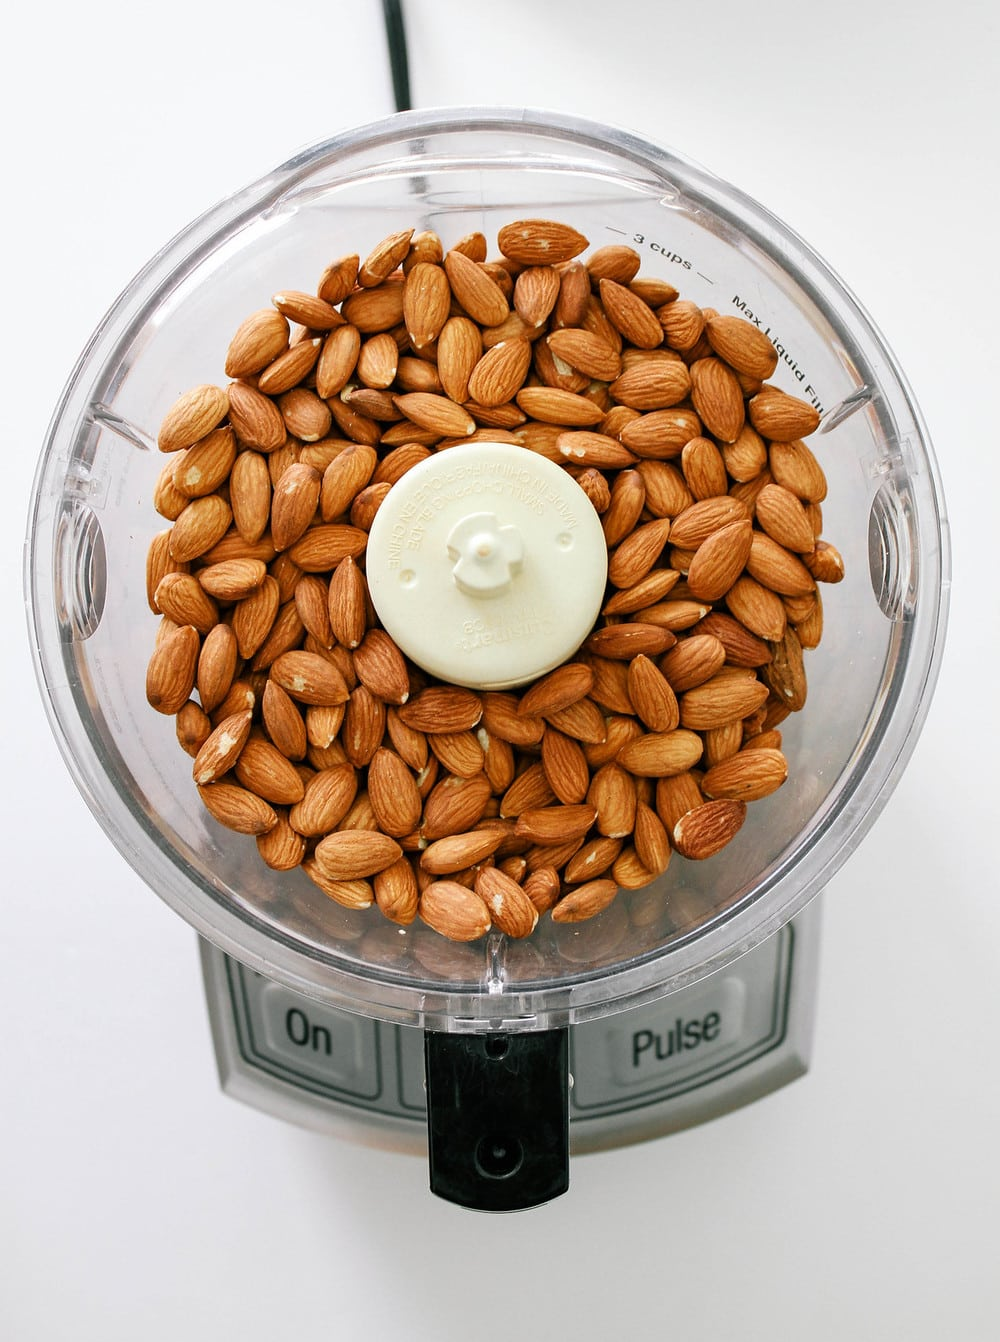 almond added to the bottom of a food processor before starting to blend